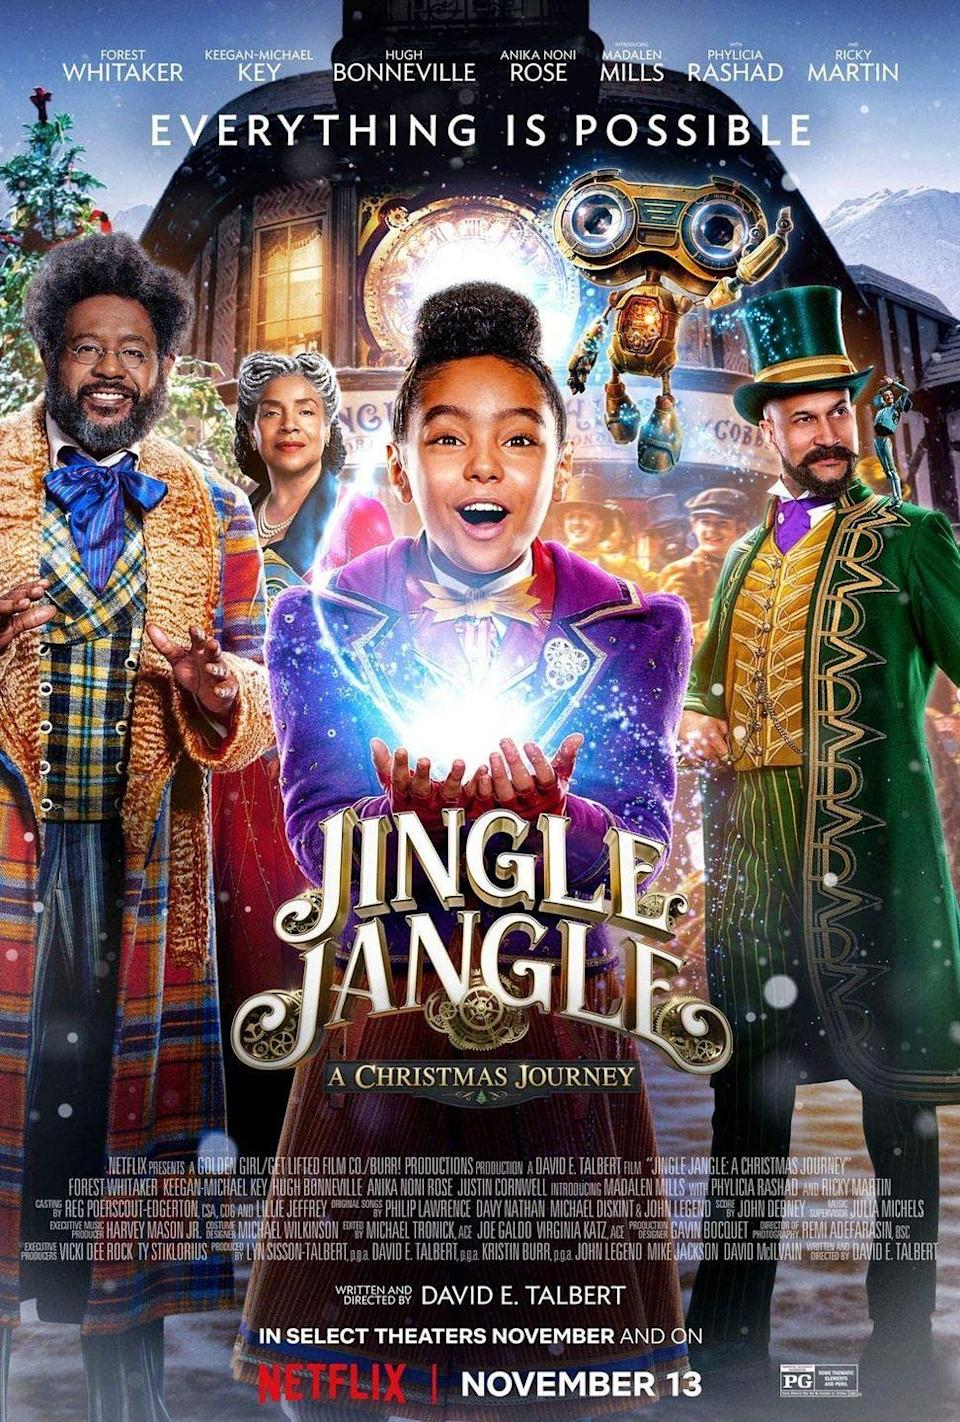 """<p>After being betrayed by a trusted friend, a toymaker rediscovers what it means to be joyful when his granddaughter suddenly comes into his life.</p><p><a class=""""link rapid-noclick-resp"""" href=""""https://www.netflix.com/title/80232043"""" rel=""""nofollow noopener"""" target=""""_blank"""" data-ylk=""""slk:STREAM NOW"""">STREAM NOW</a></p>"""